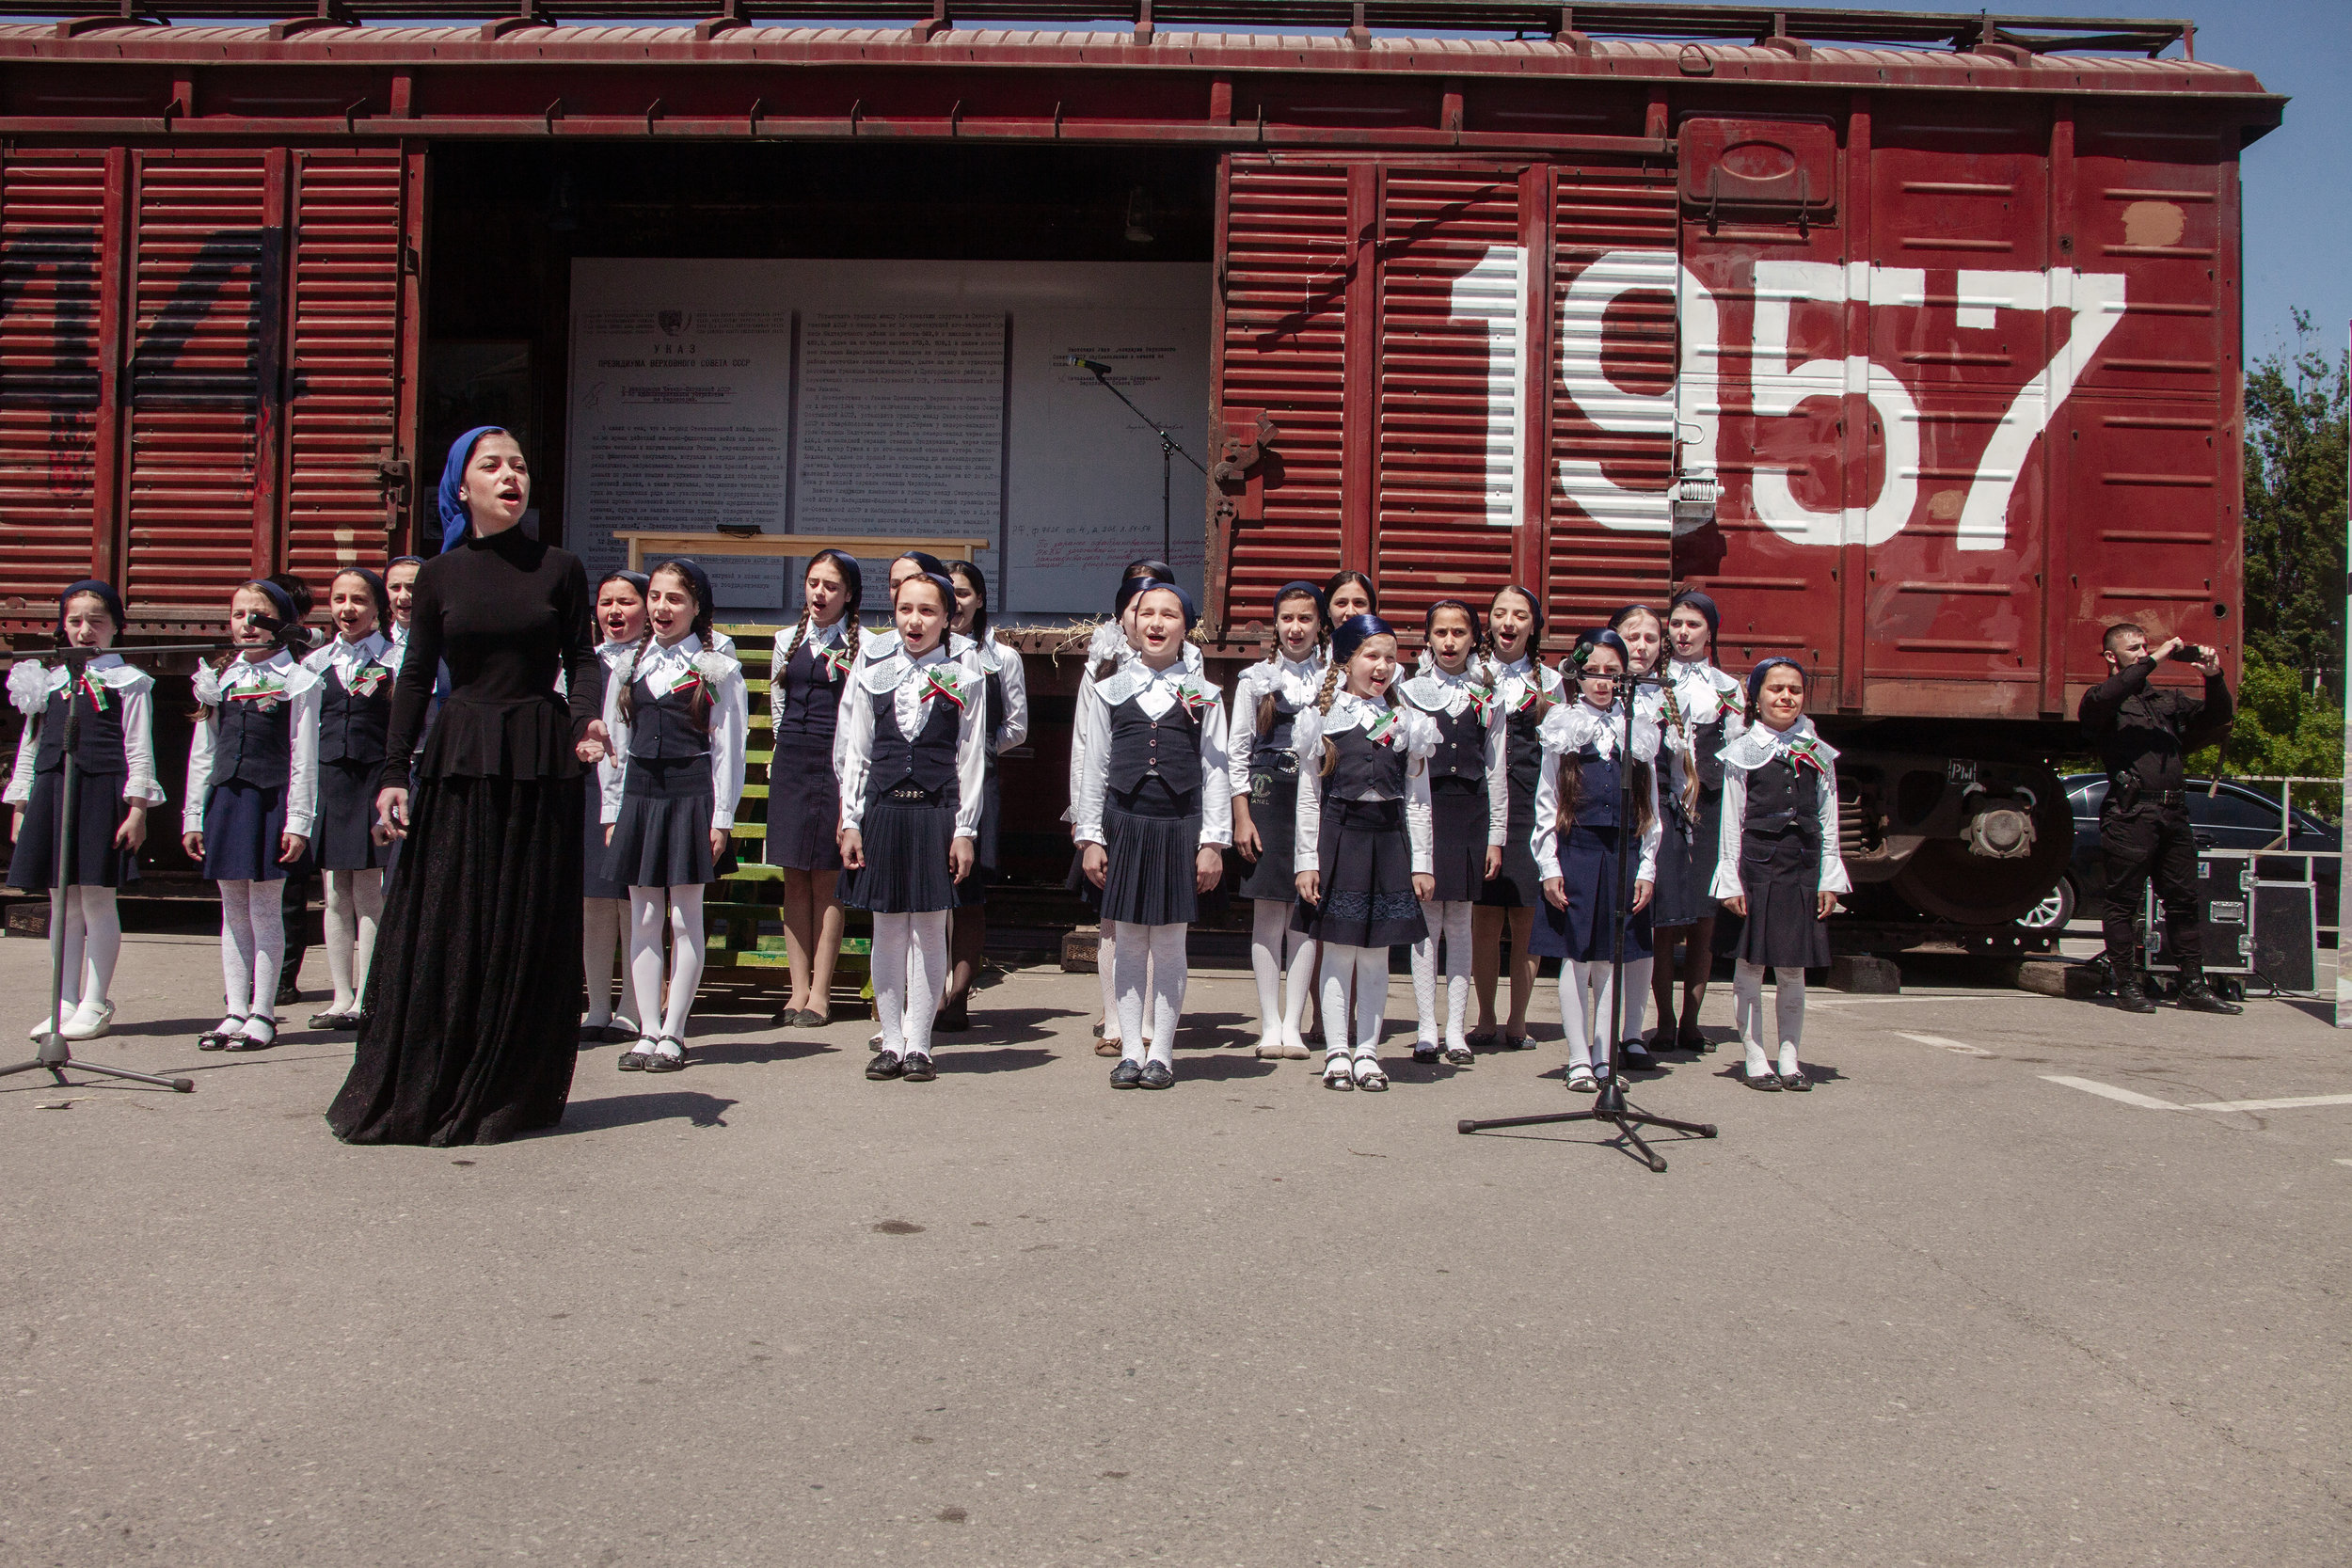 Russia, Chechnya, Grozny, 10 May 2013. A choir of schoolgirls singing a song dedicated to Akhmad Kadyrov, next to a train carriage commemorating Stalin's forced deportation of Chechens to Central Asia in 1944. In 1957 Nikita Khrushchev reversed the process.